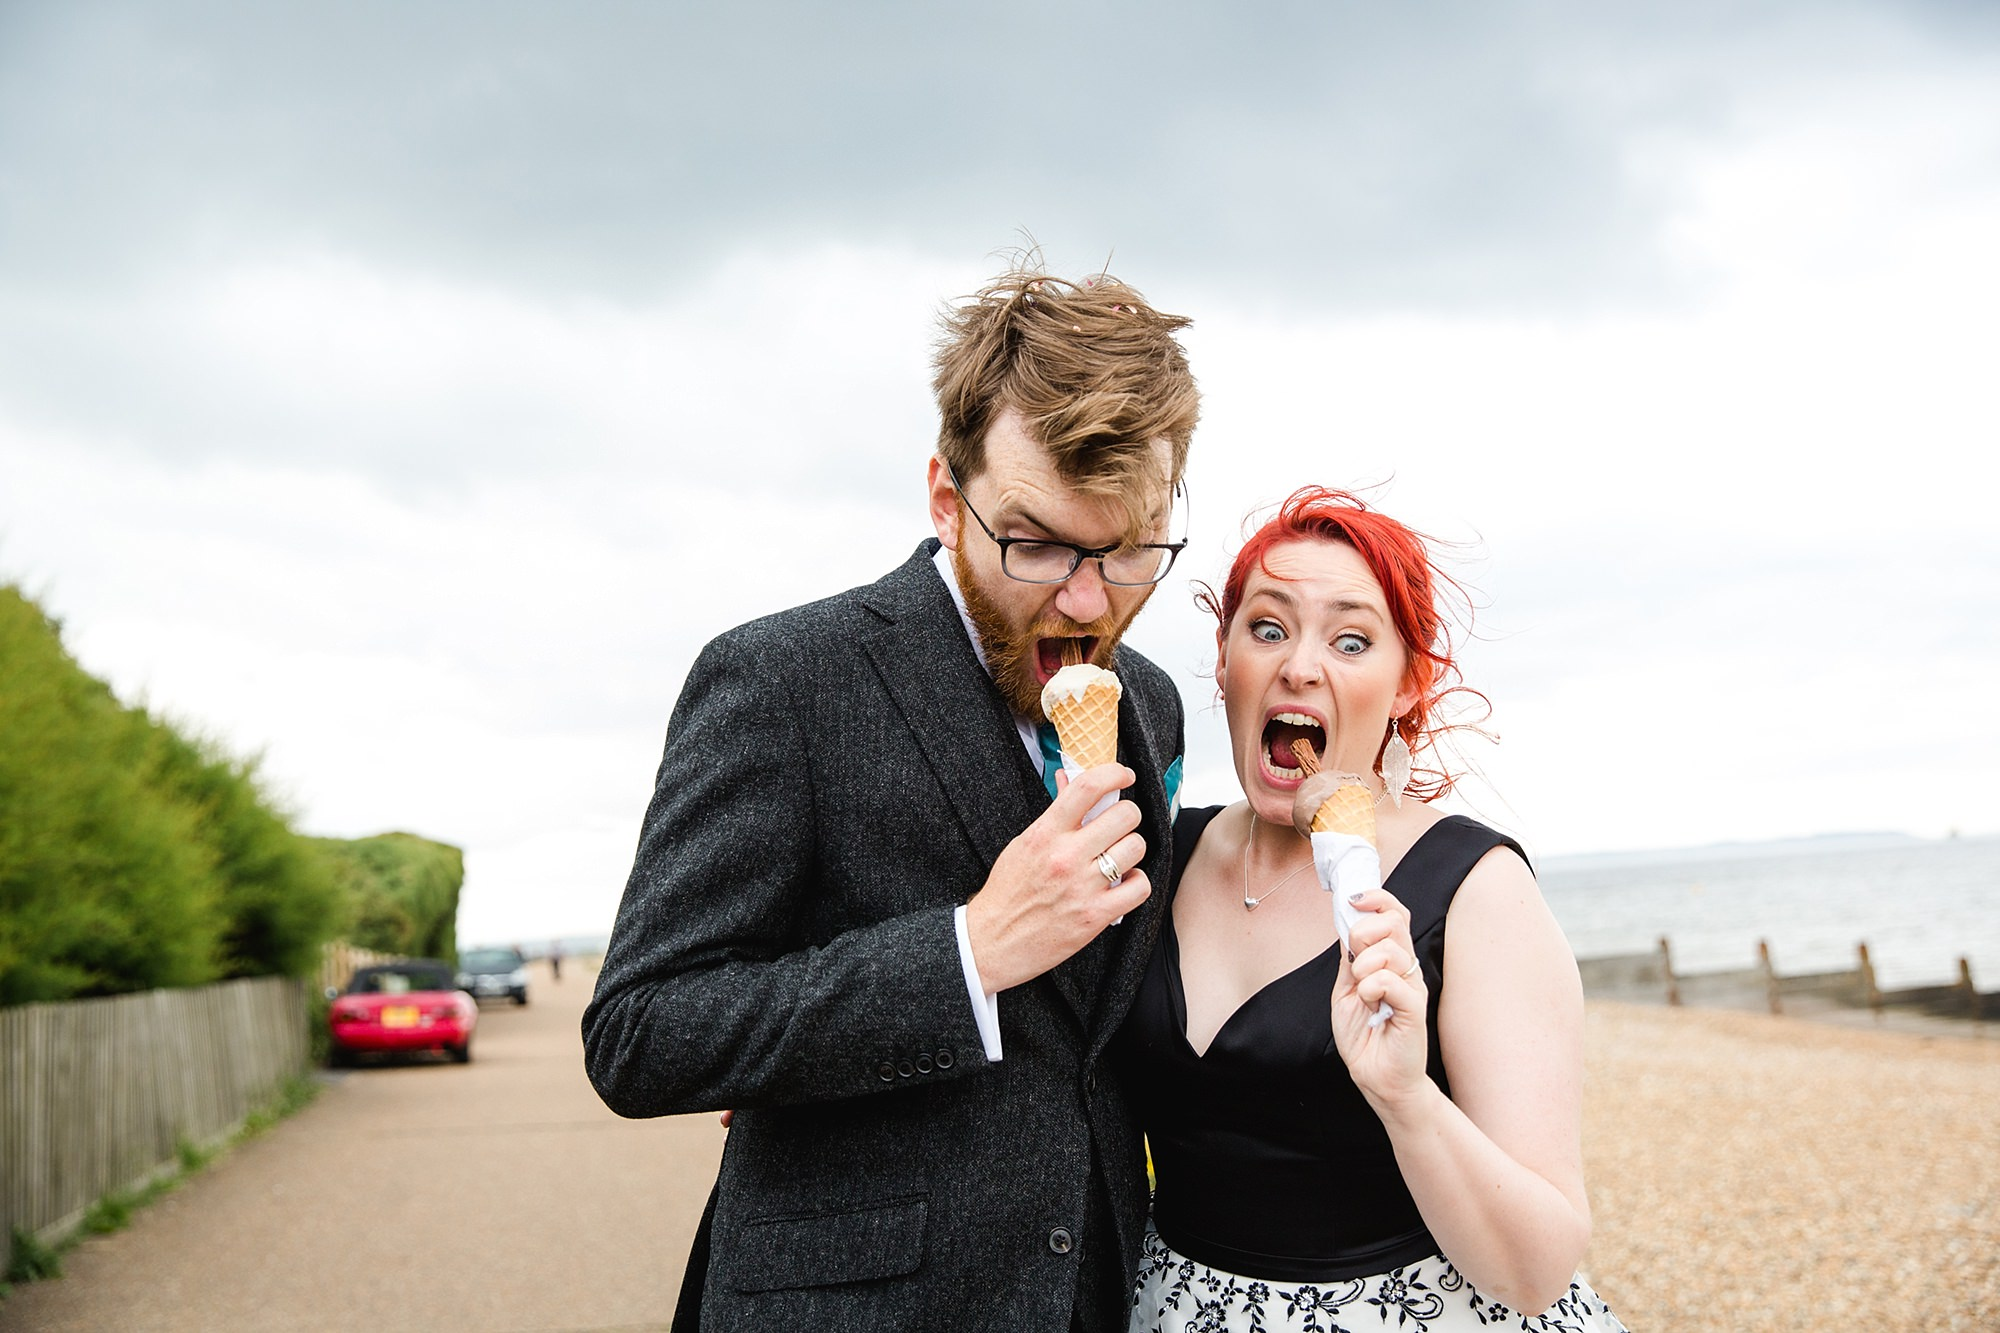 Beacon House wedding funny portrait of bride and groom eating ice cream cones